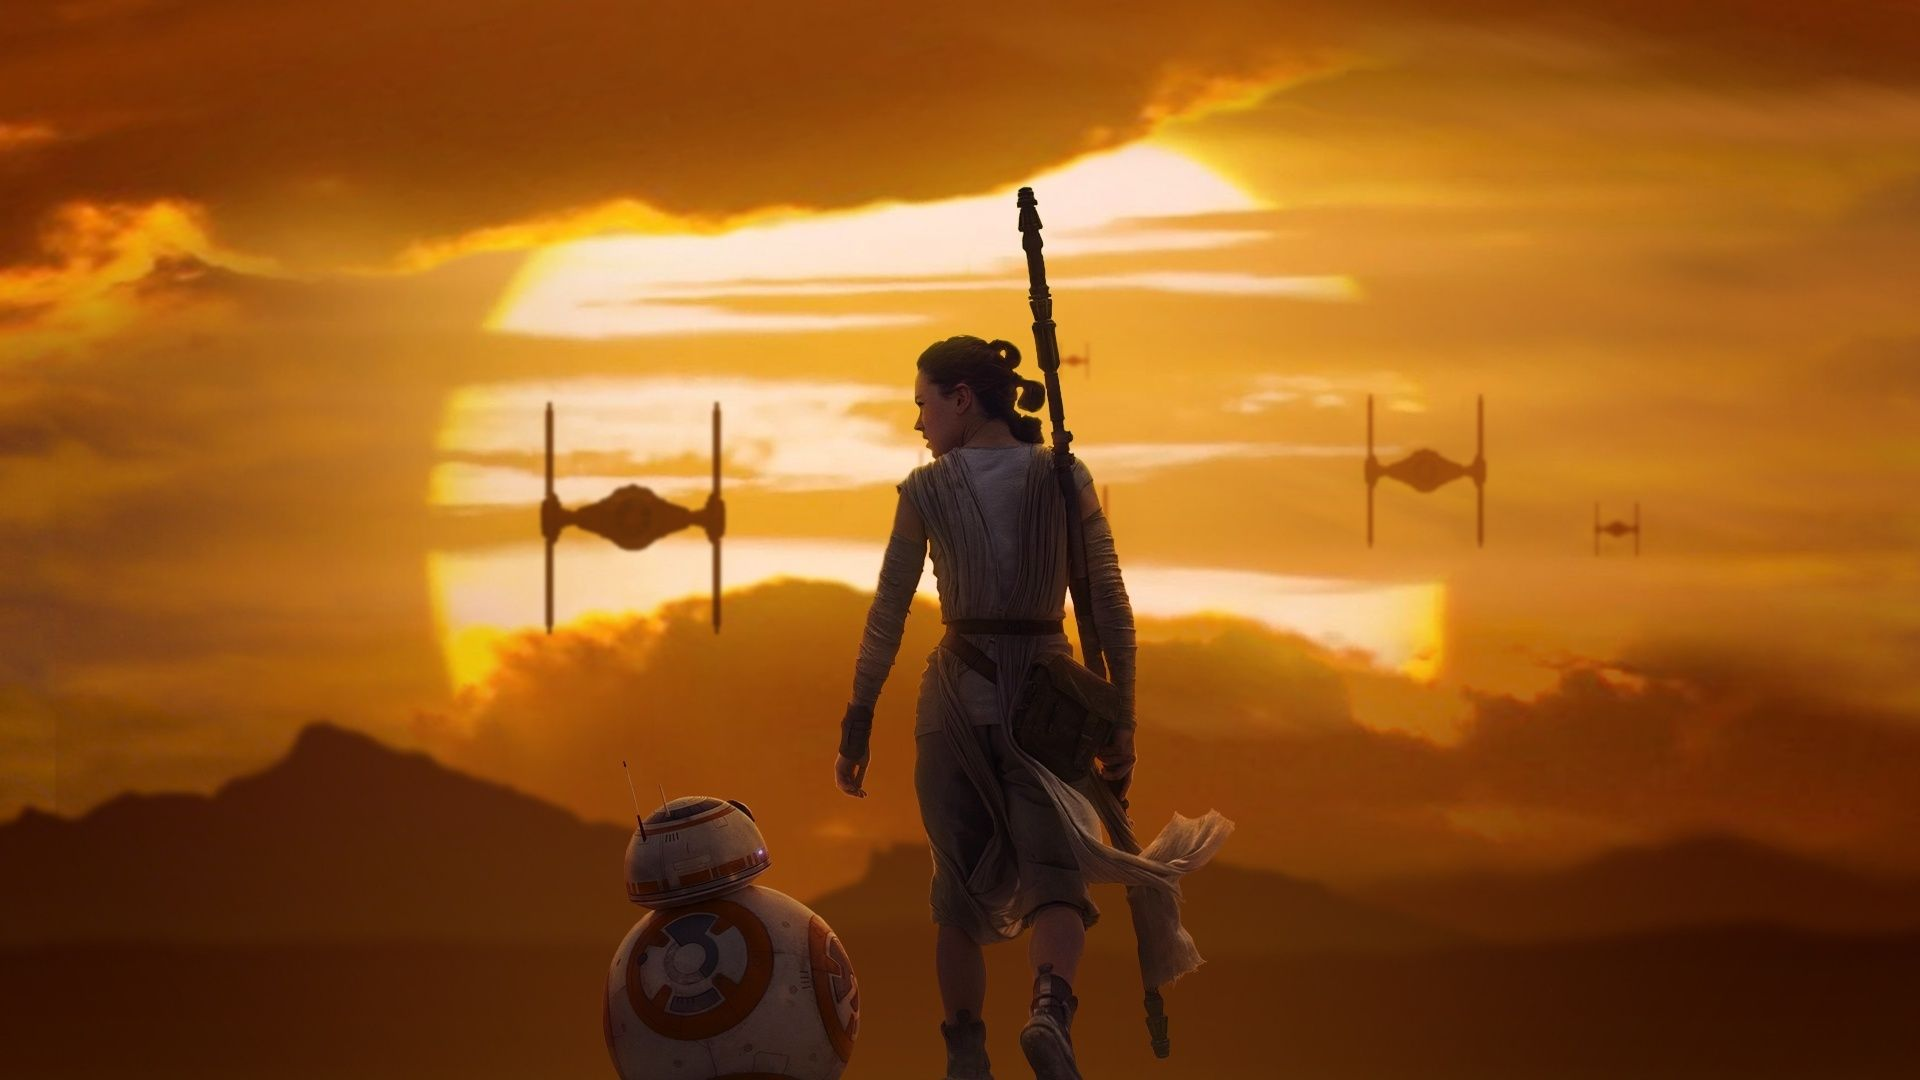 Rey Bb 8 Star Wars The Force Awakens Wallpapers Free Computer Desktop Wallpaper Star Wars Wallpaper Star Wars Background Rey Star Wars